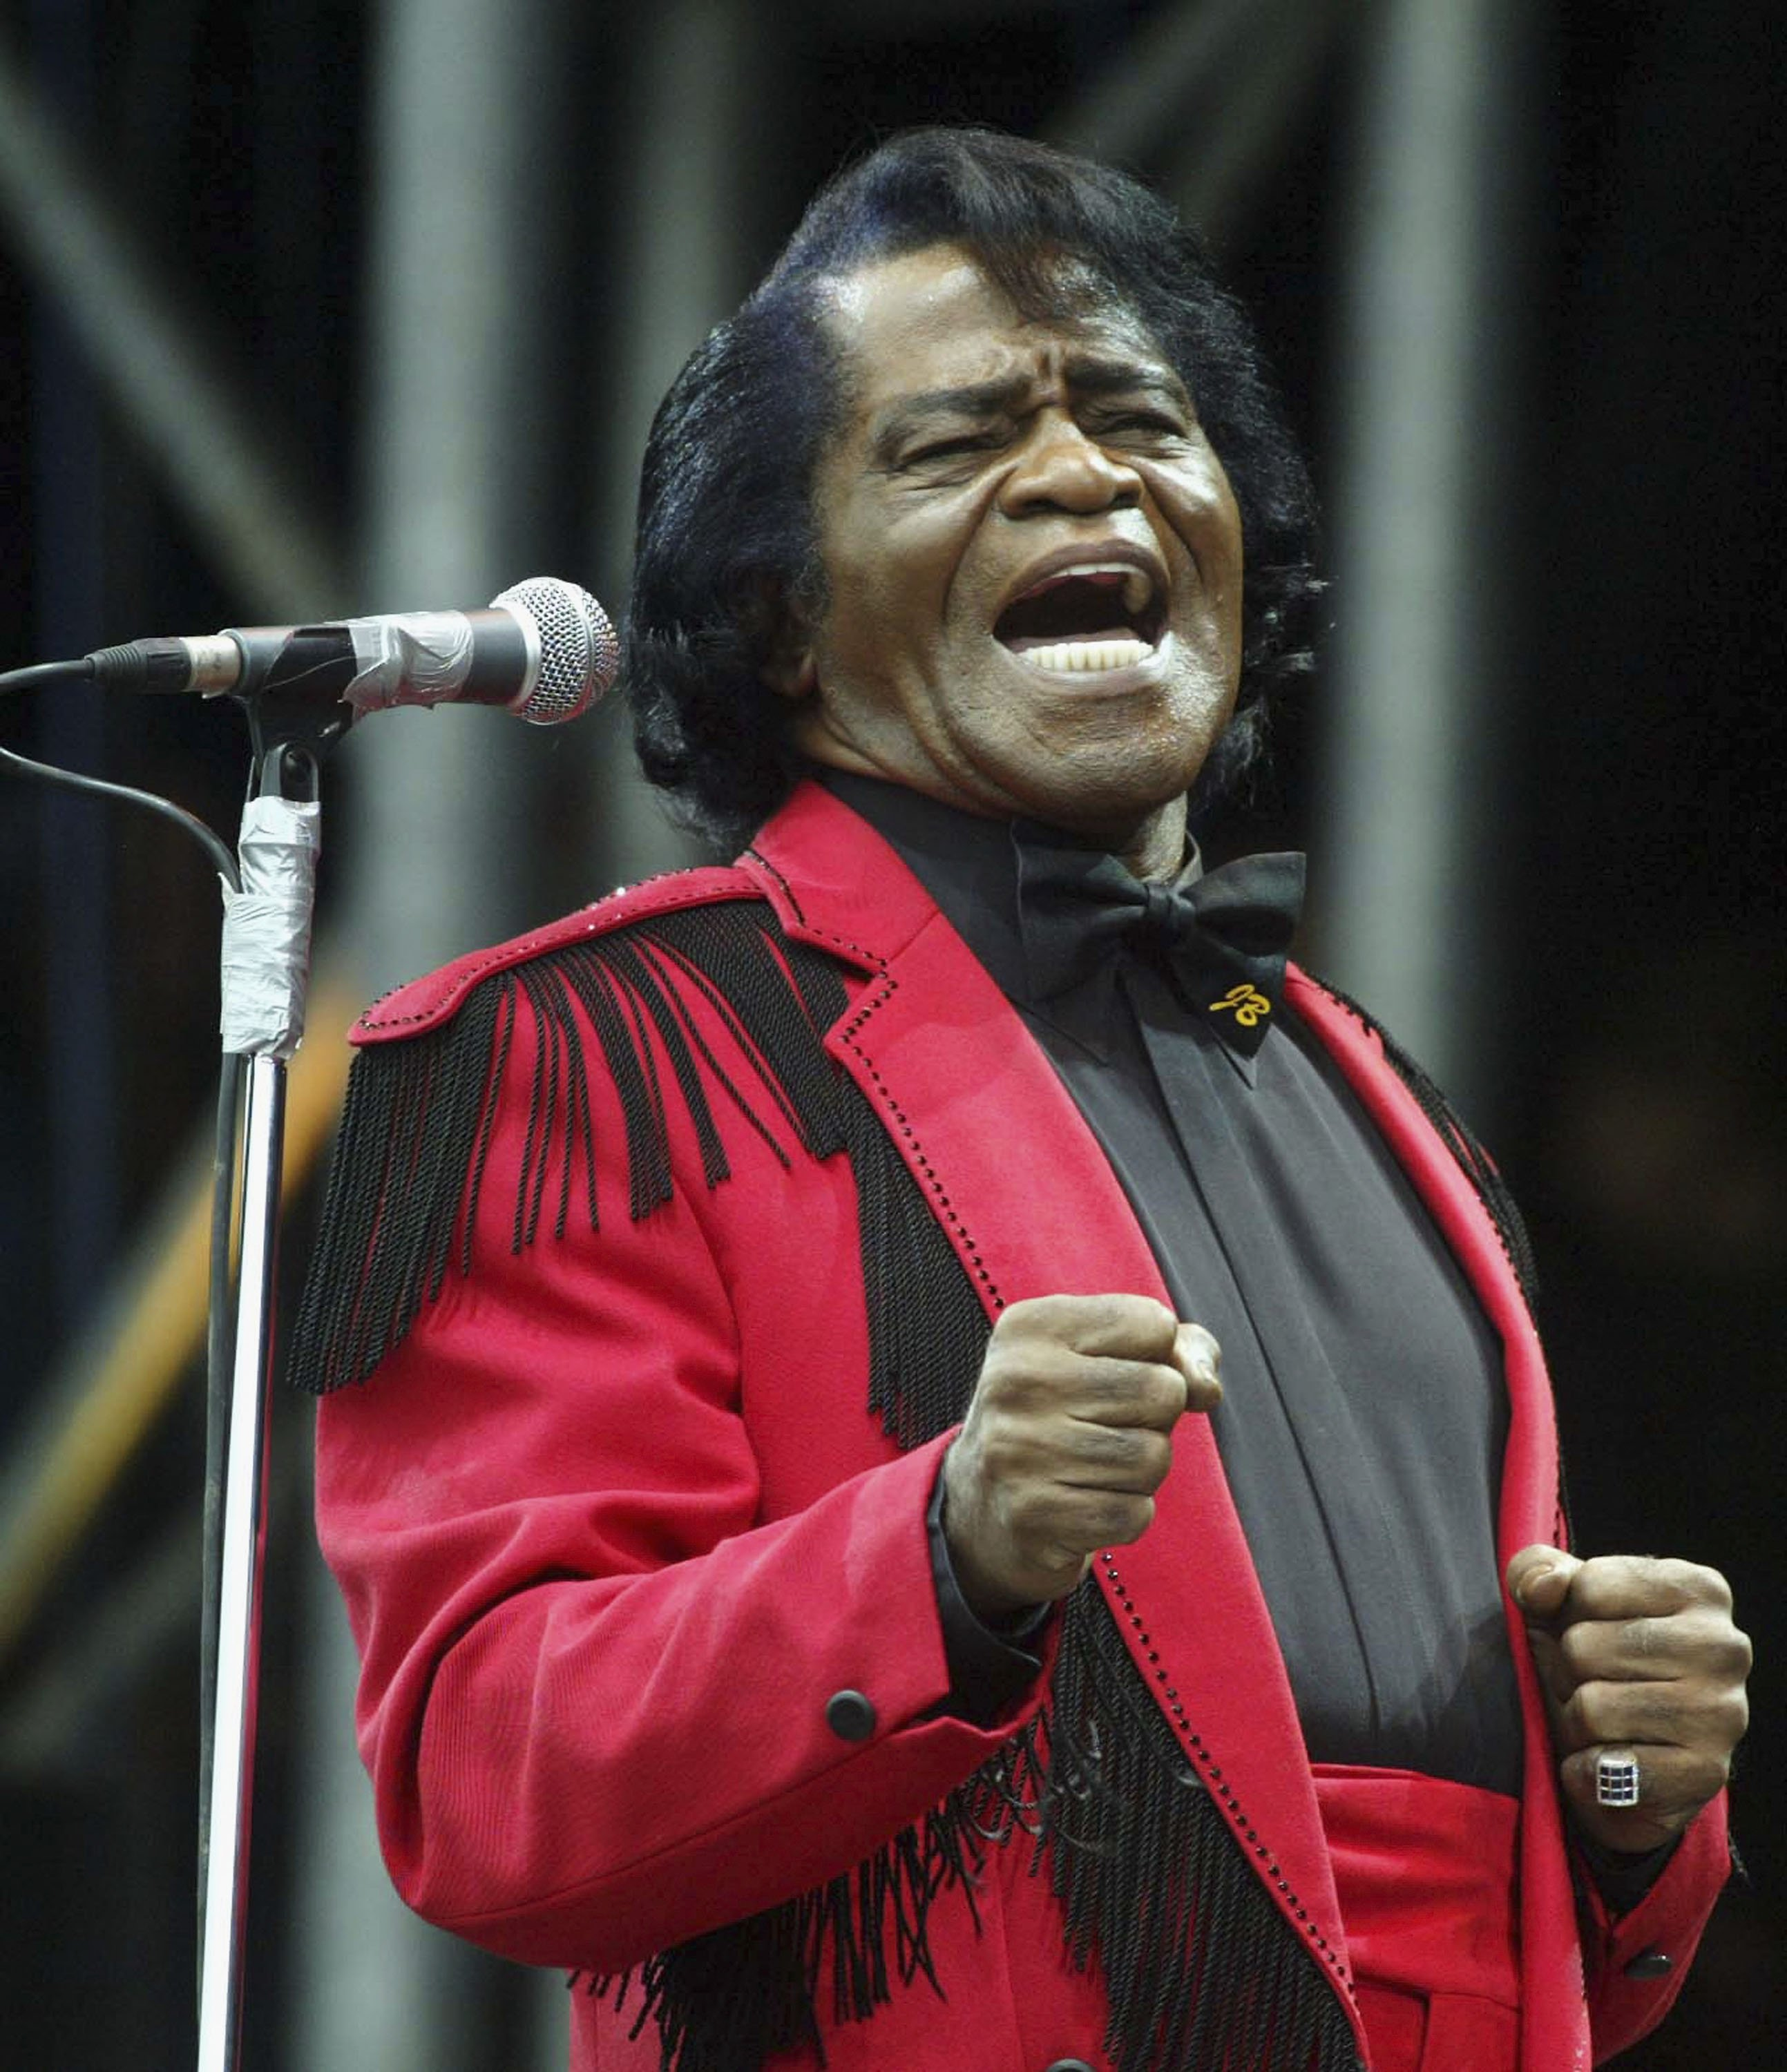 James Brown performing in England on June 27, 2004. | Photo: Getty Images